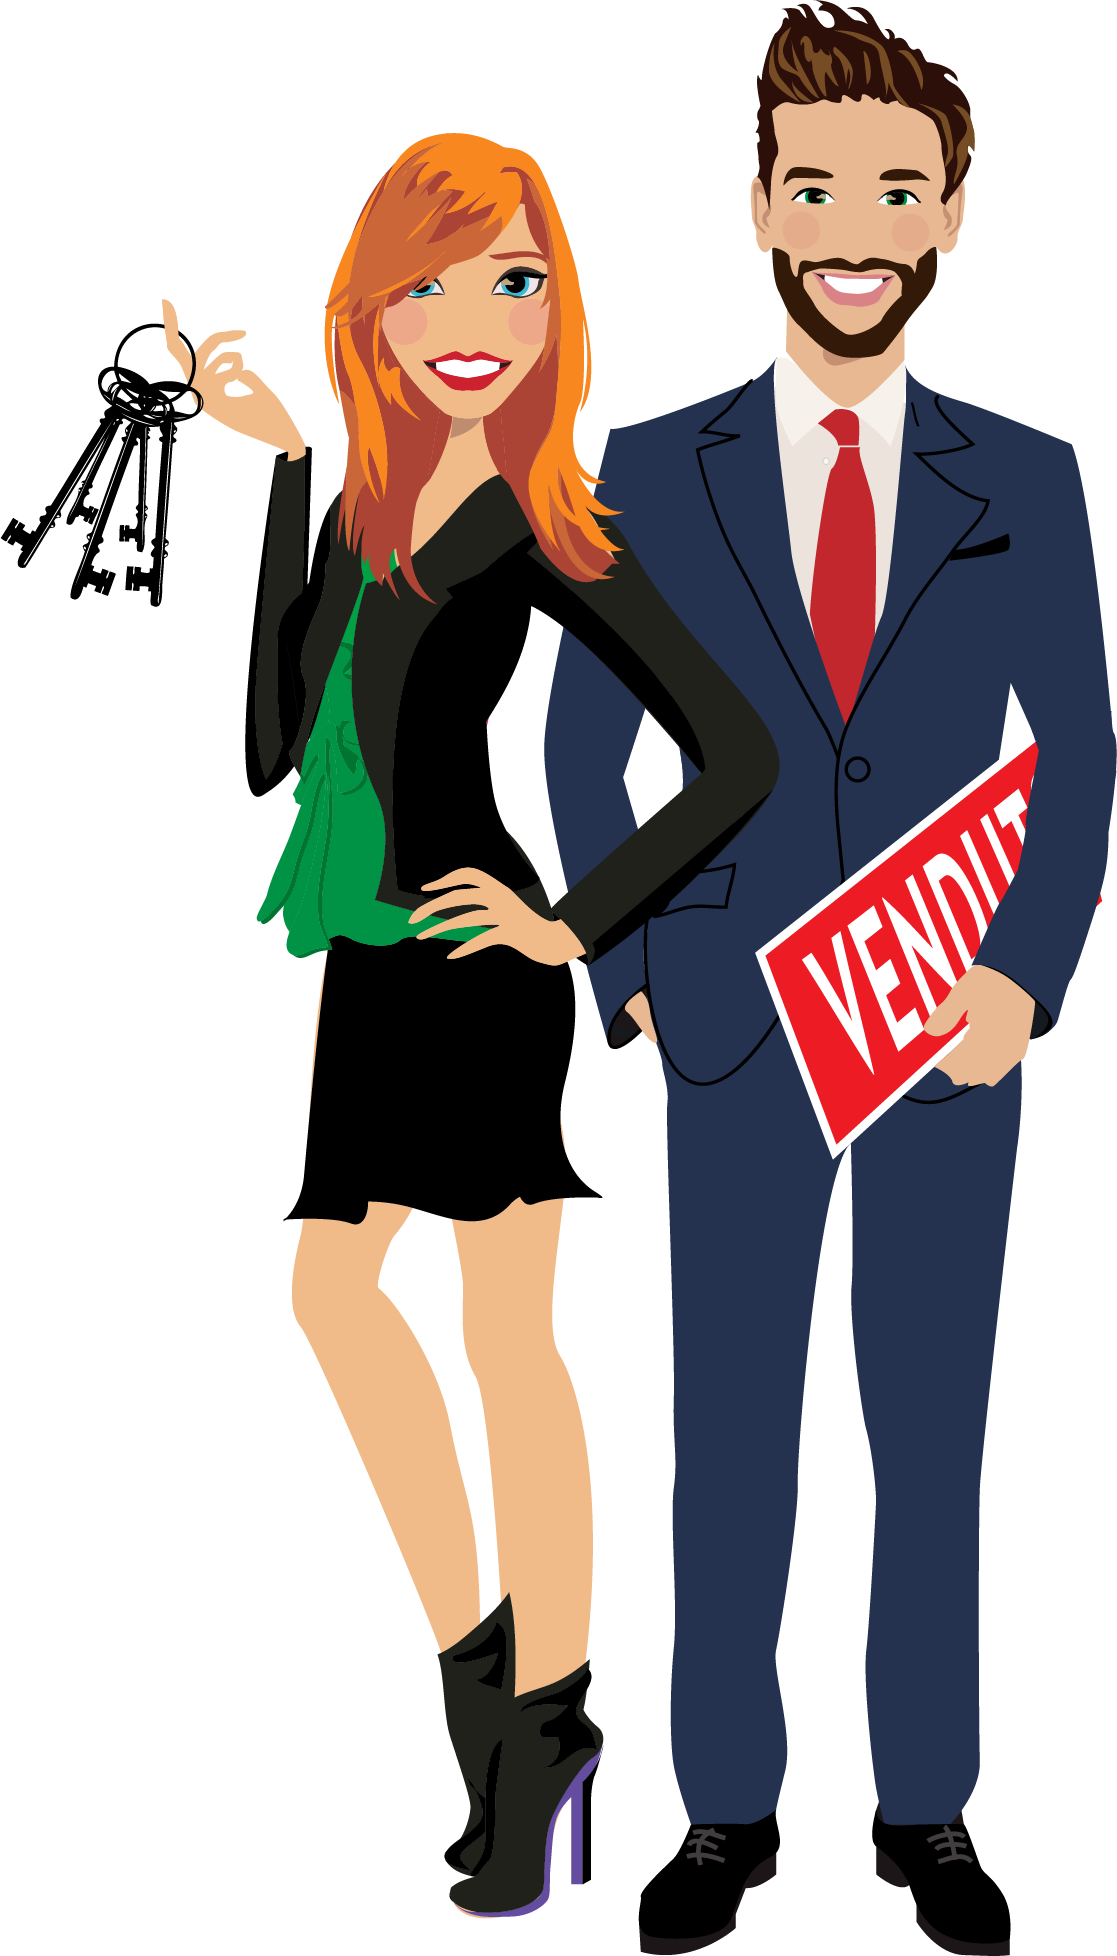 Final Design of Custom Portrait Illustration - Here is the final design that Ann approved. It is a beautiful vector illustration of herself with her business partner; both real estate agents from Italy.